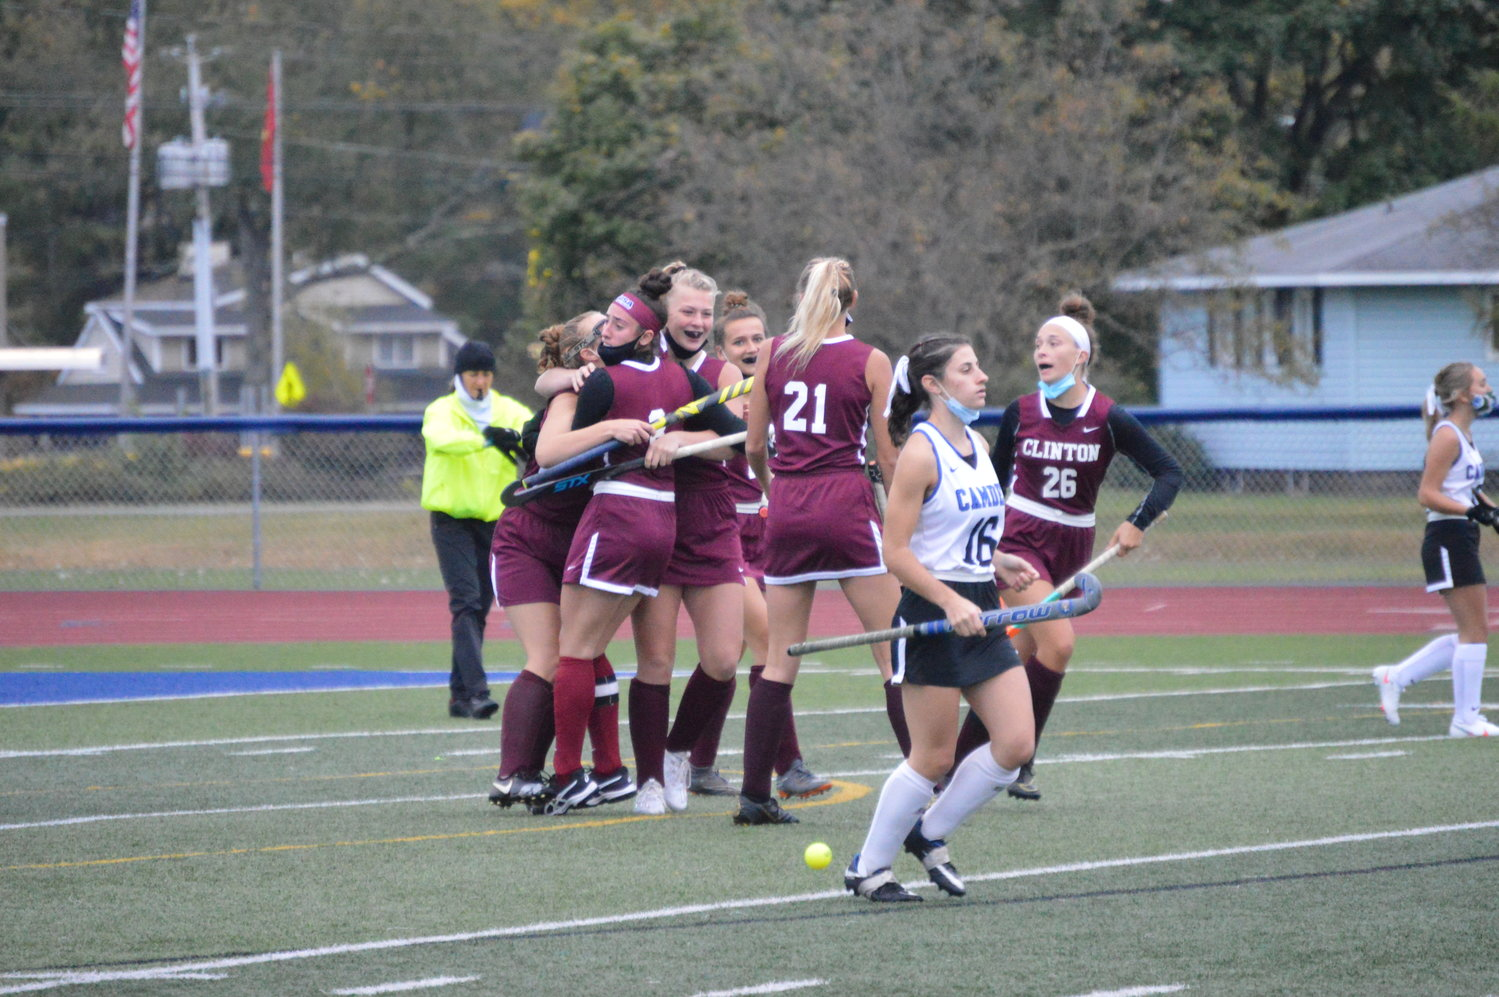 GOAL! — The Clinton field hockey team celebrates a goal scored by Jenna Deep less than 15 seconds into Monday night, Oct. 5's game against Camden. Deep's goal was the difference as the Warriors shut out the Blue Devils, 1-0.